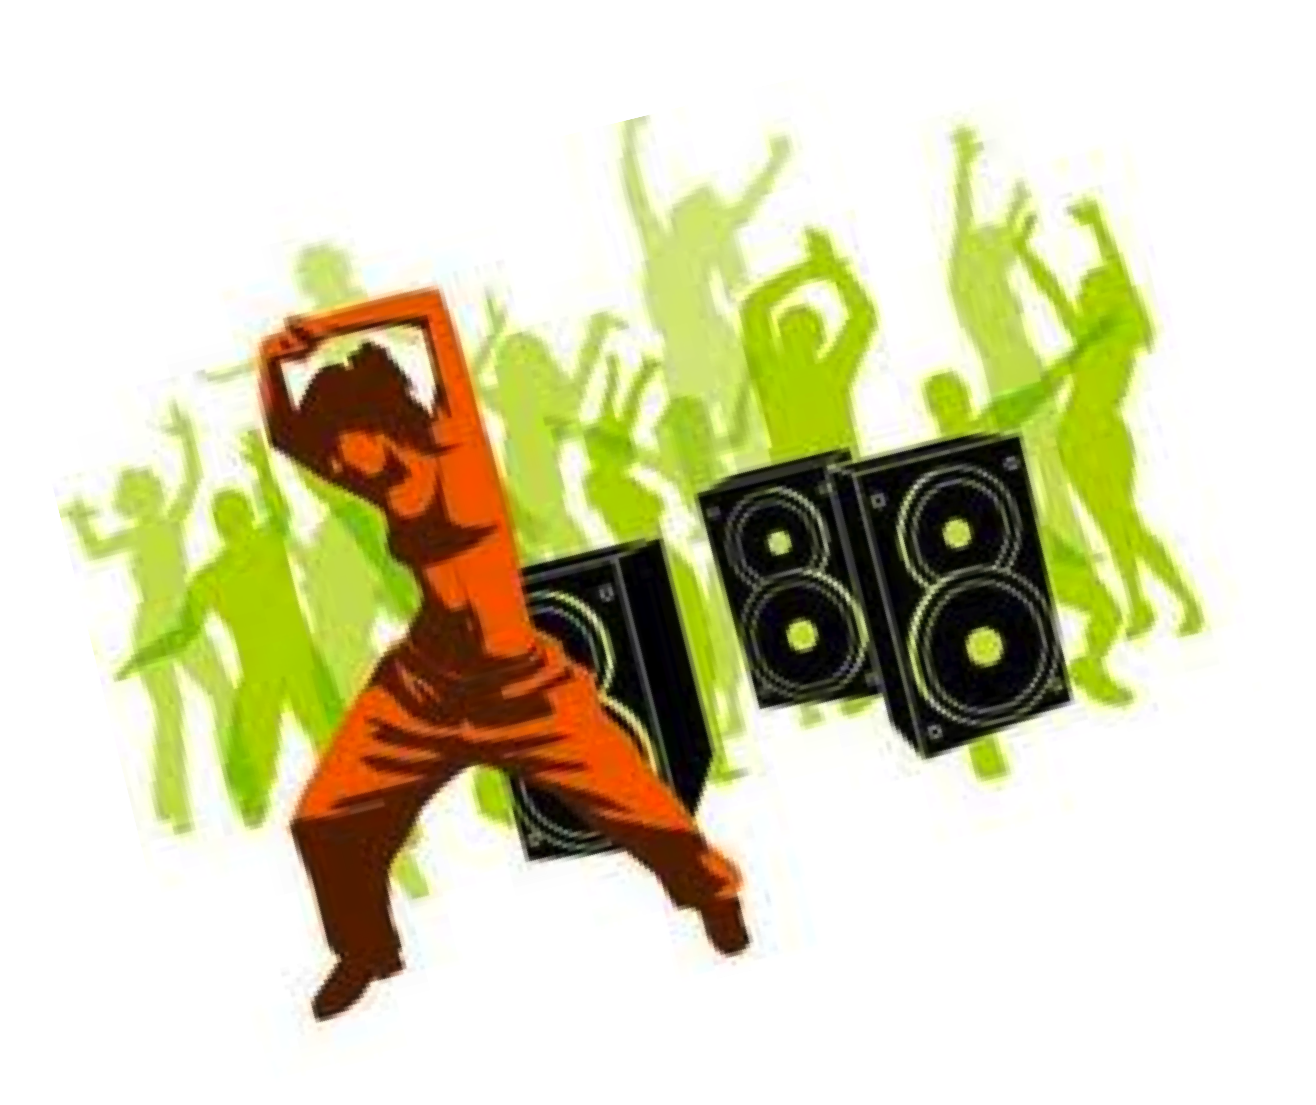 Exercising clipart dance exercise. Zumba physical fitness toning